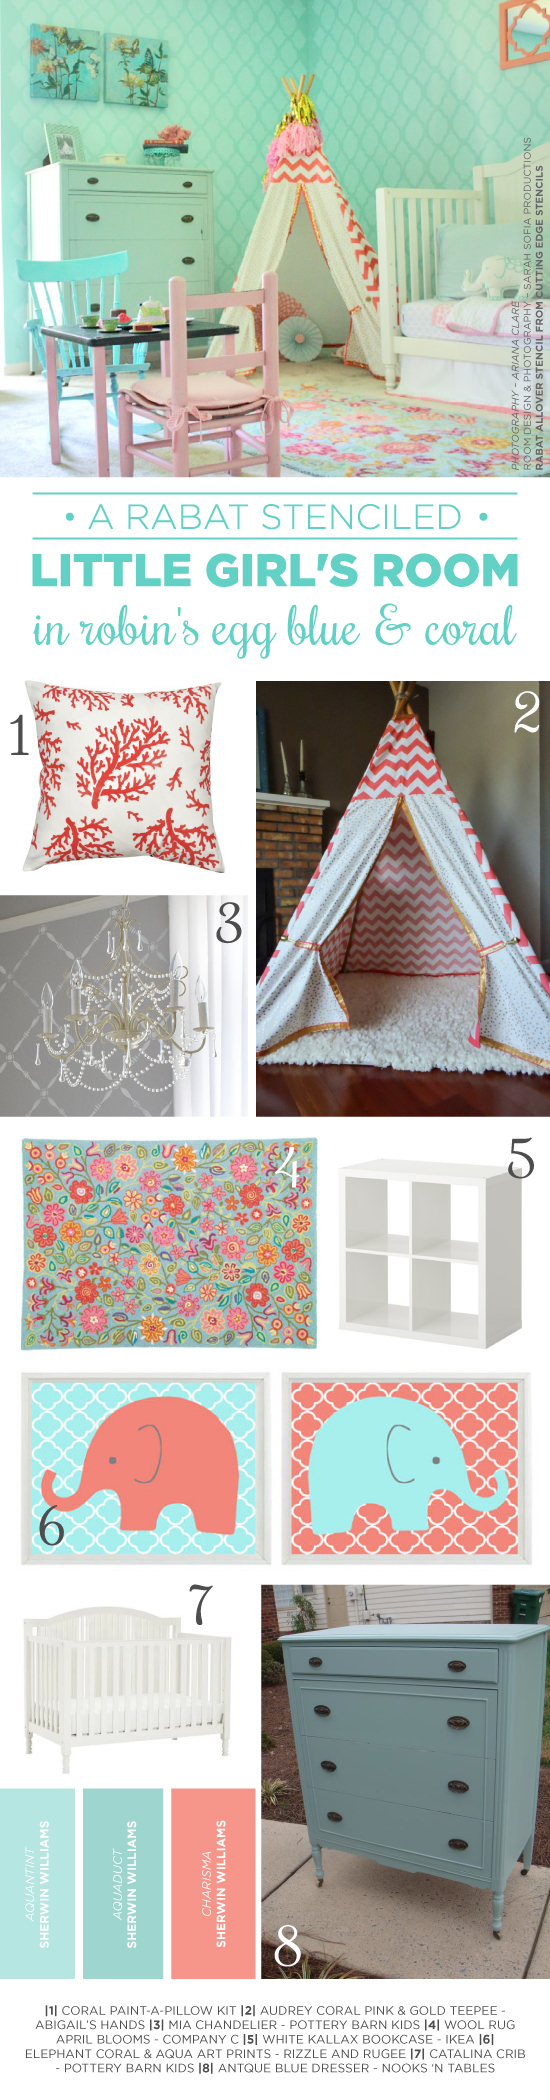 Cutting Edge Stencils shares how to recreate the look of this Rabat Allover stenciled girl's bedroom. http://www.cuttingedgestencils.com/moroccan-stencil-pattern-3.html